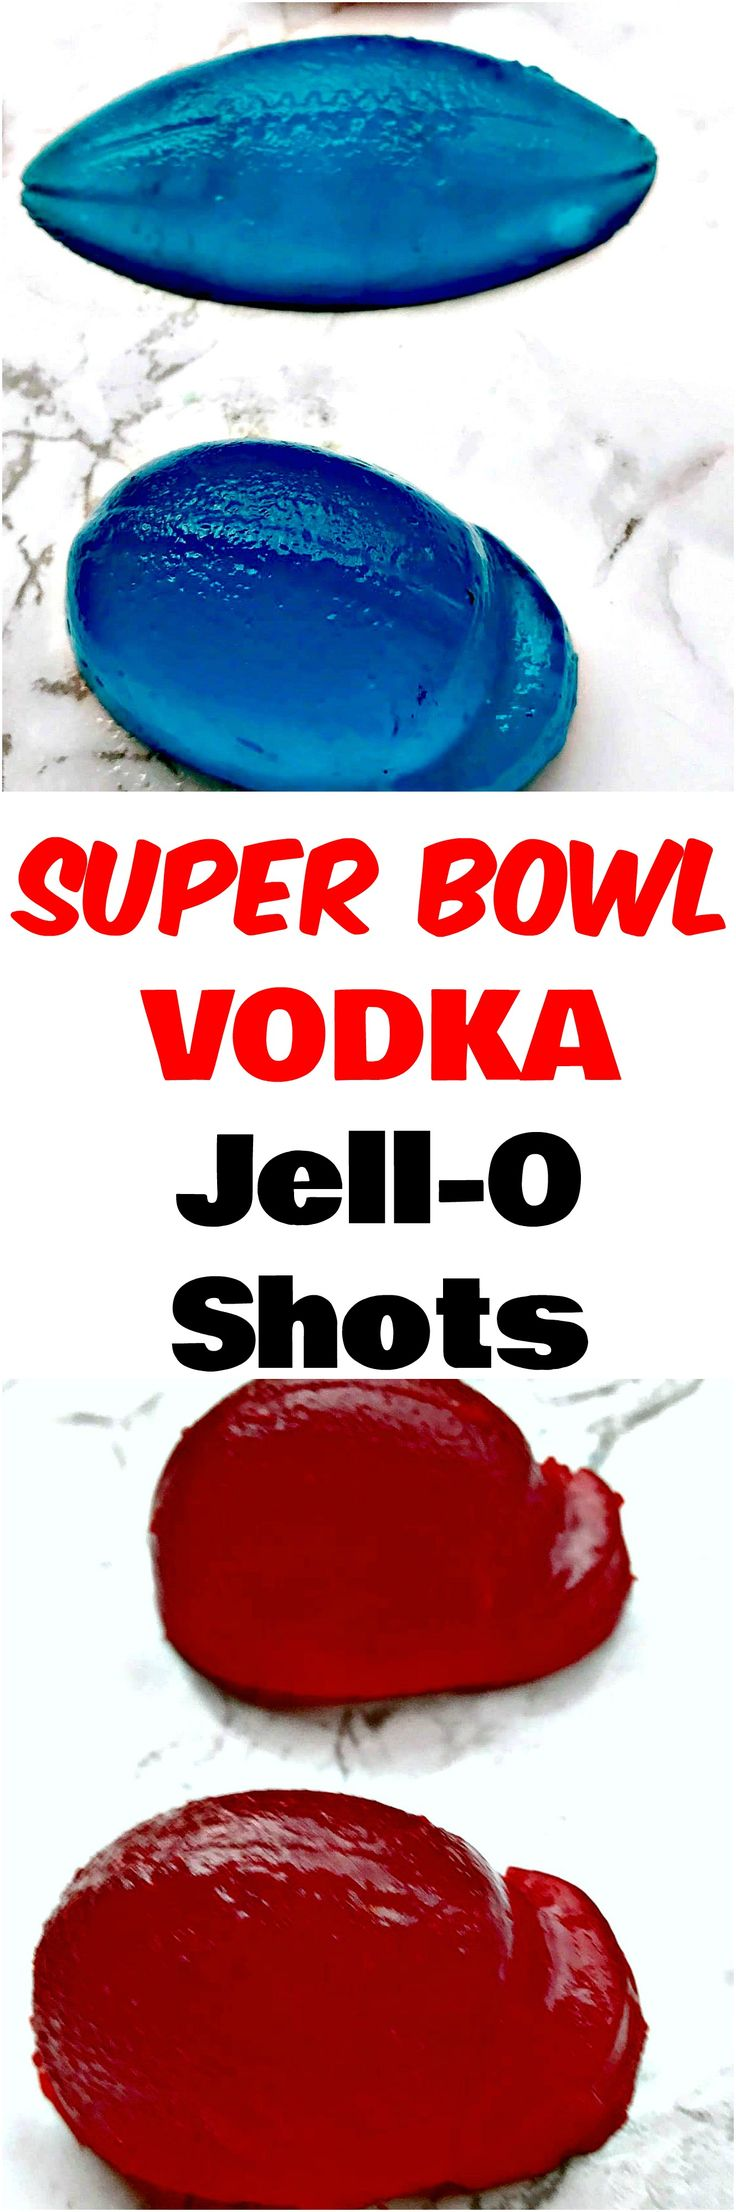 Super Bowl Vodka Jell-O Shots cocktail with no added sugar are fun, football mold jello-shots perfect for game day, tailgates, parties, or any event. #GameDay #SuperBowl #Shots #Cocktails